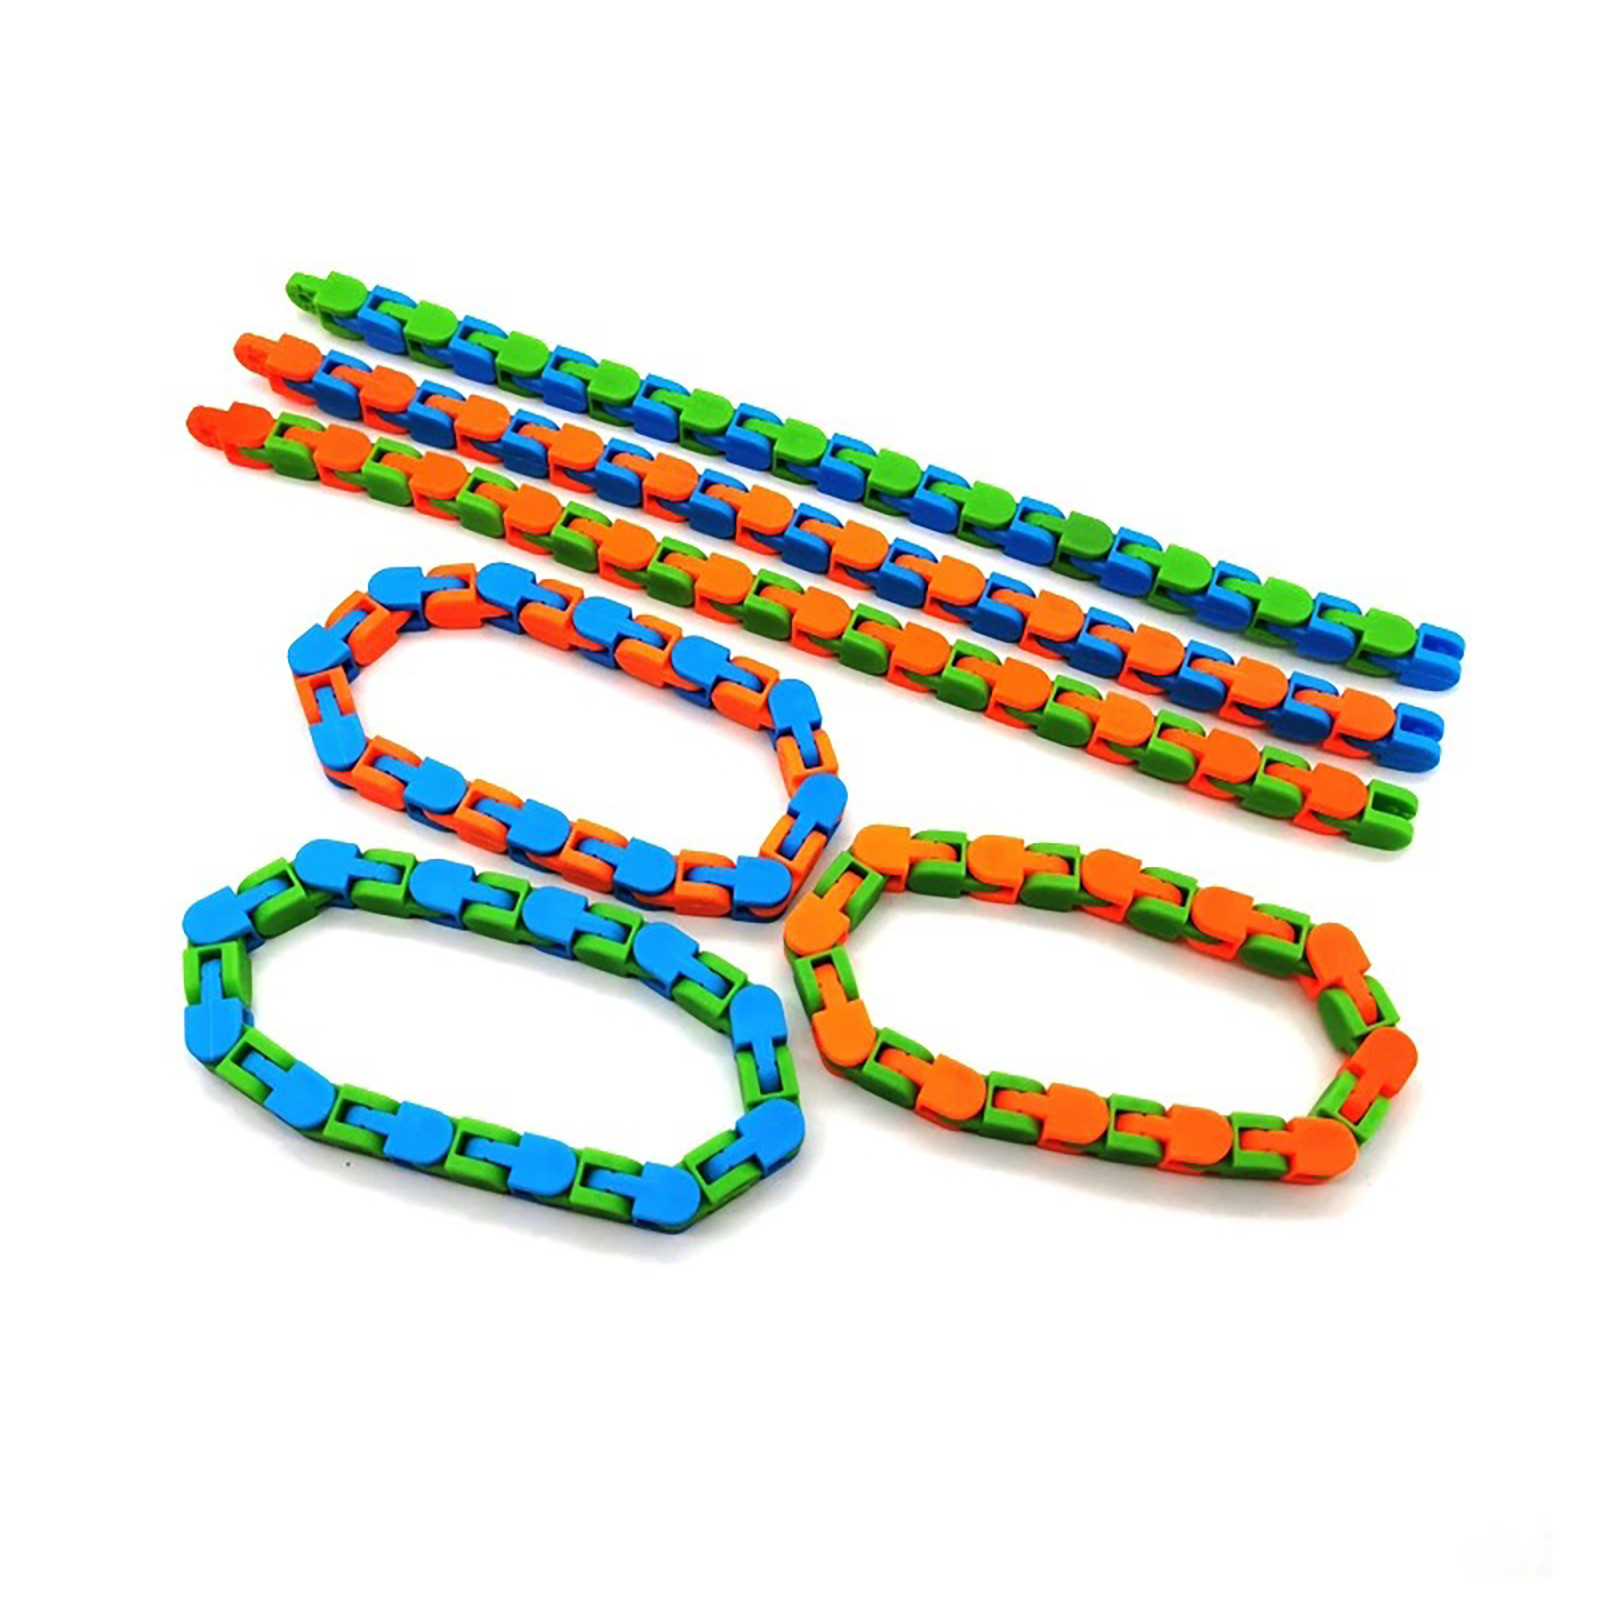 New-Toys Puzzle Tracks Stress Wacky Sensory Snap Click And Relief-Rotate Shape 24bit